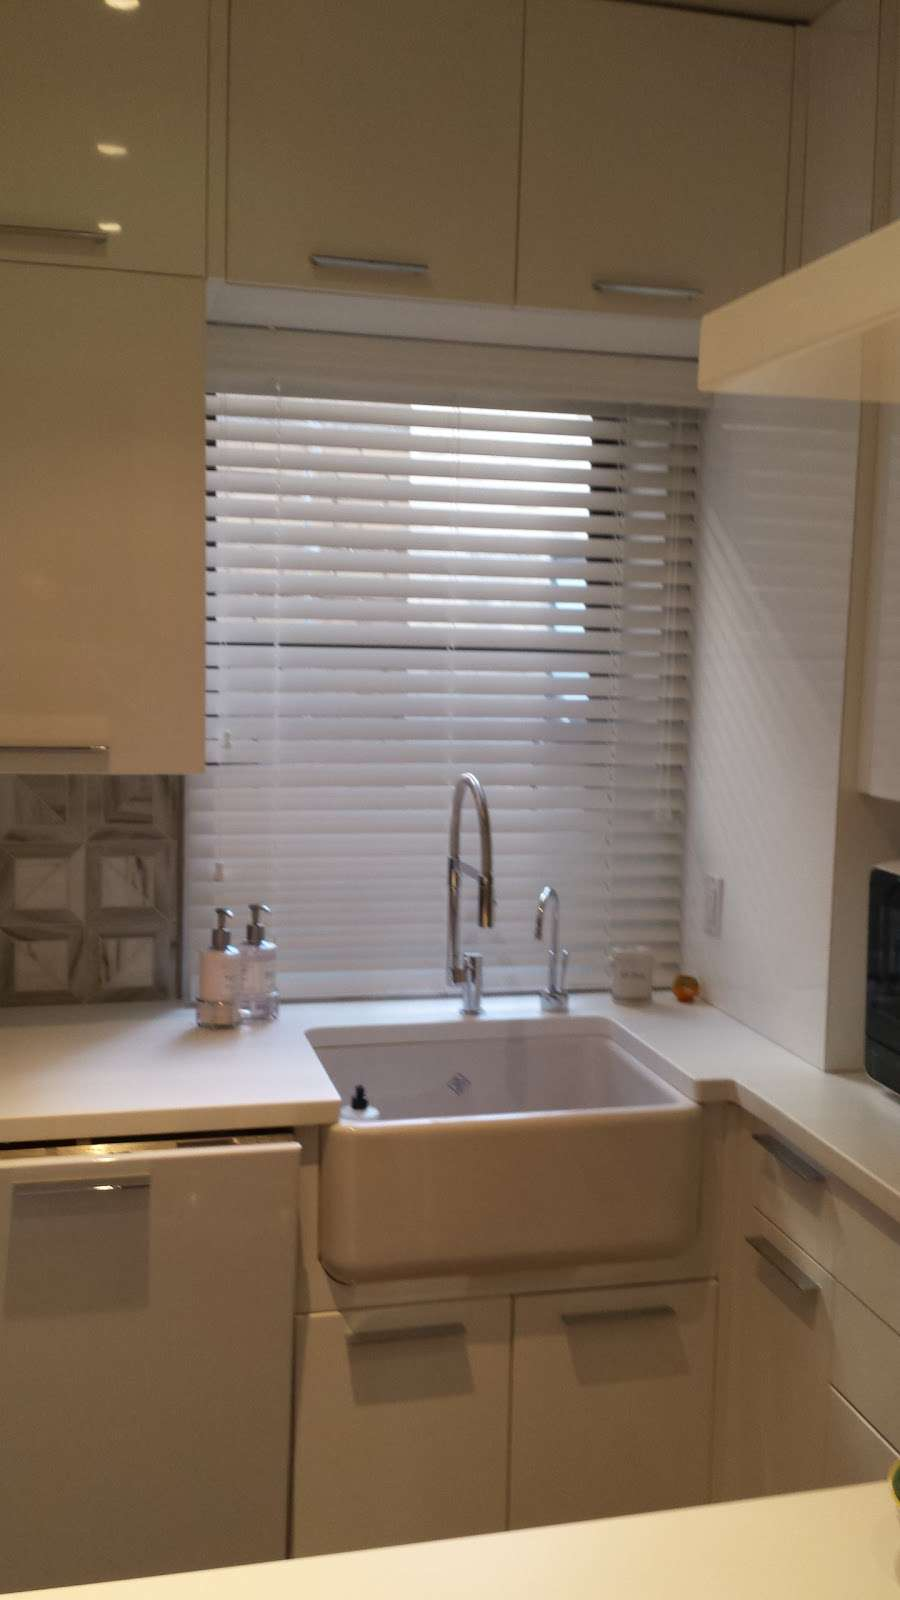 Shades Blinds and Draperies - store  | Photo 9 of 10 | Address: 6813 18th Ave, Brooklyn, NY 11204, USA | Phone: (347) 264-0942